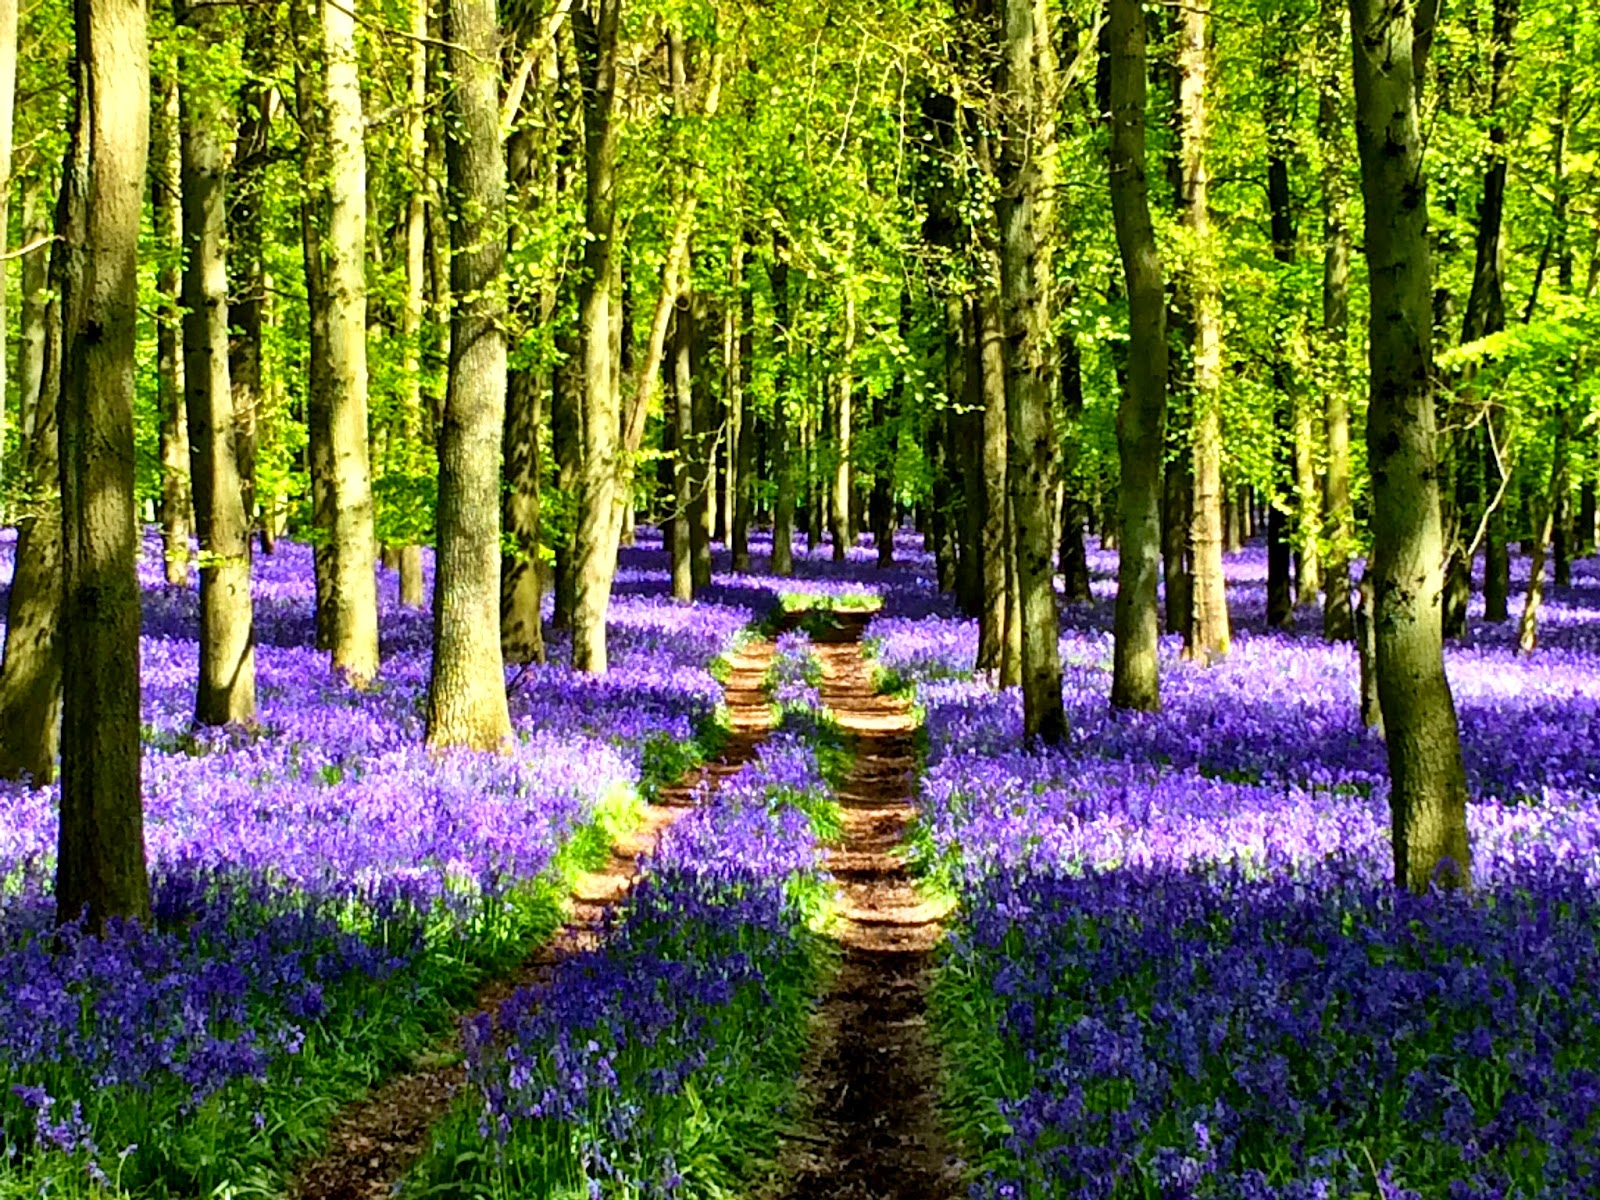 Bluebell Wood - Dockey, Ashridge Estate